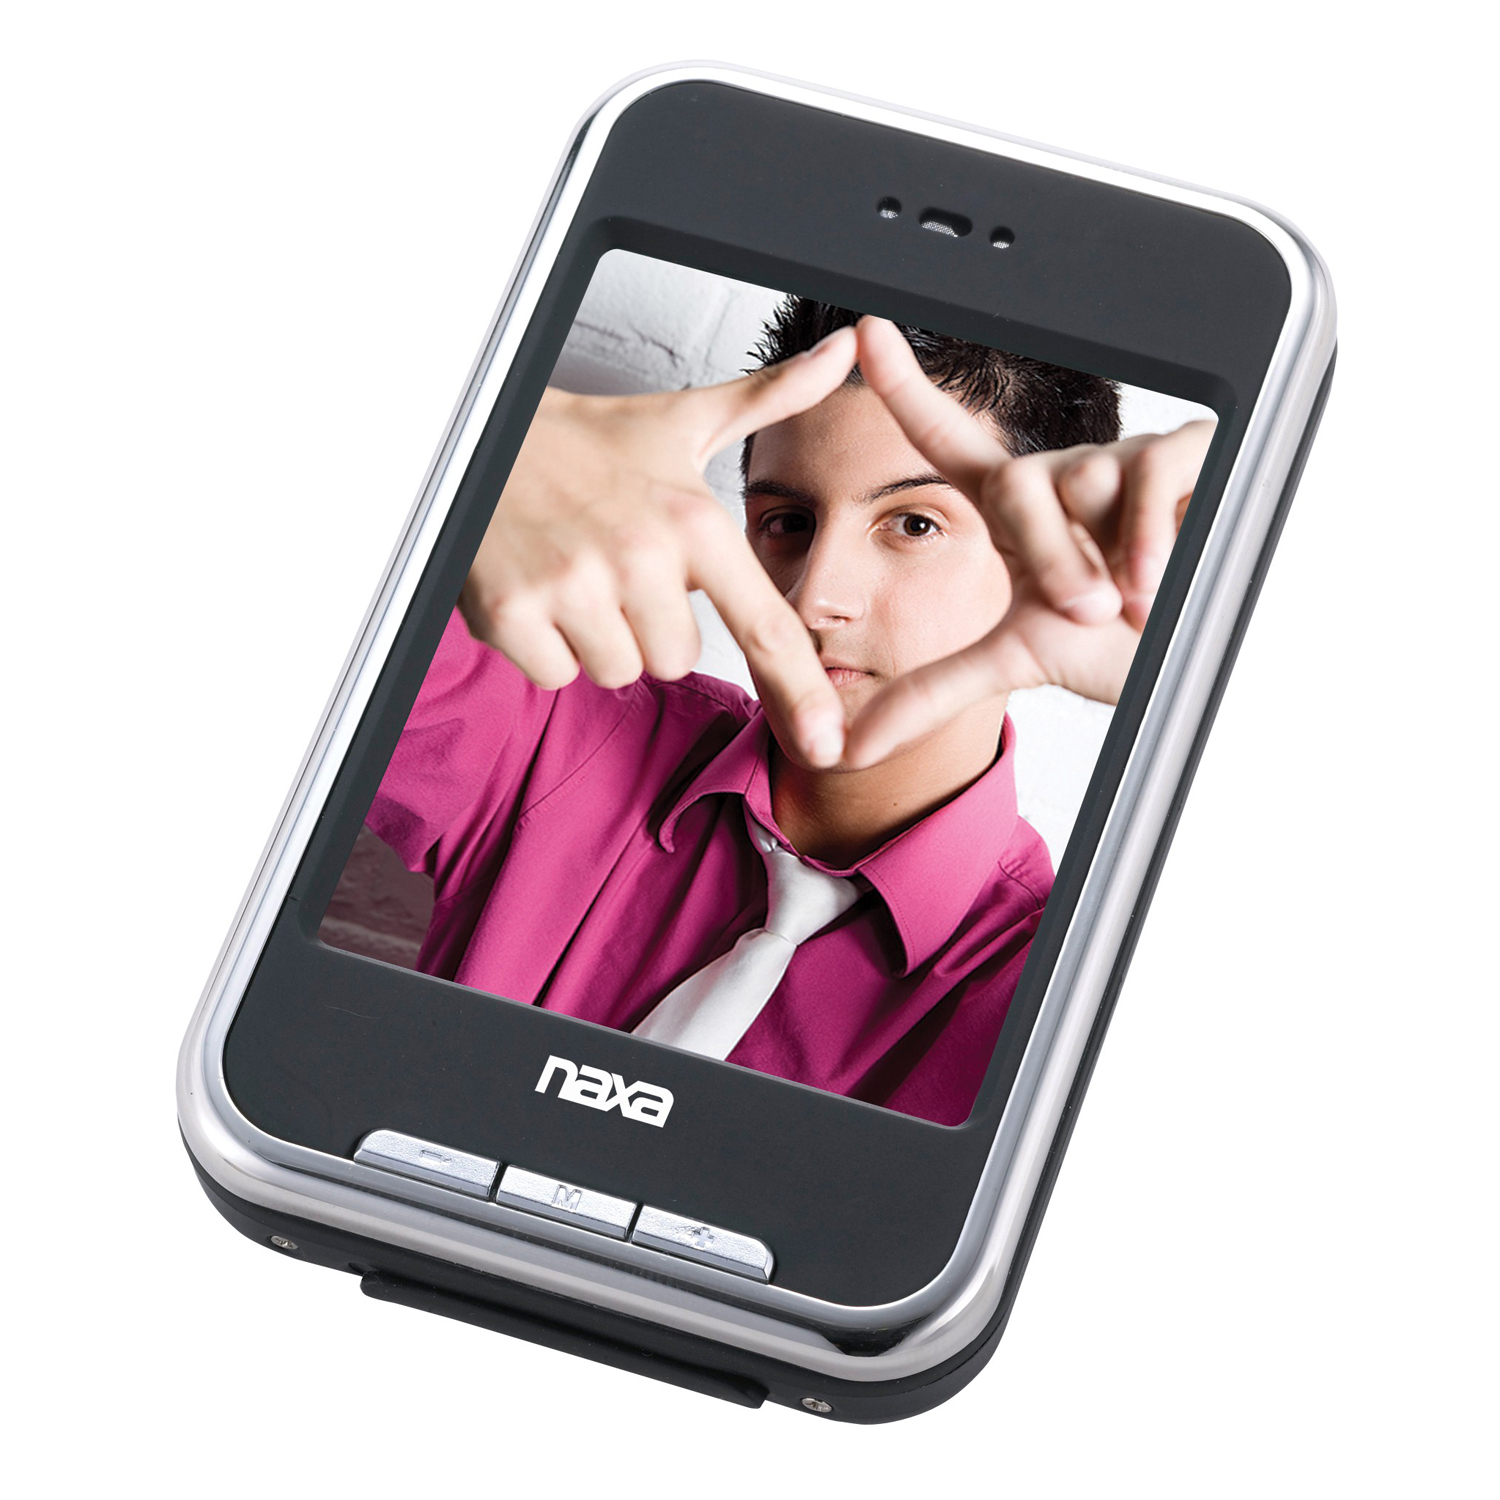 Naxa NMV-155 Portable Media Player with 2.8